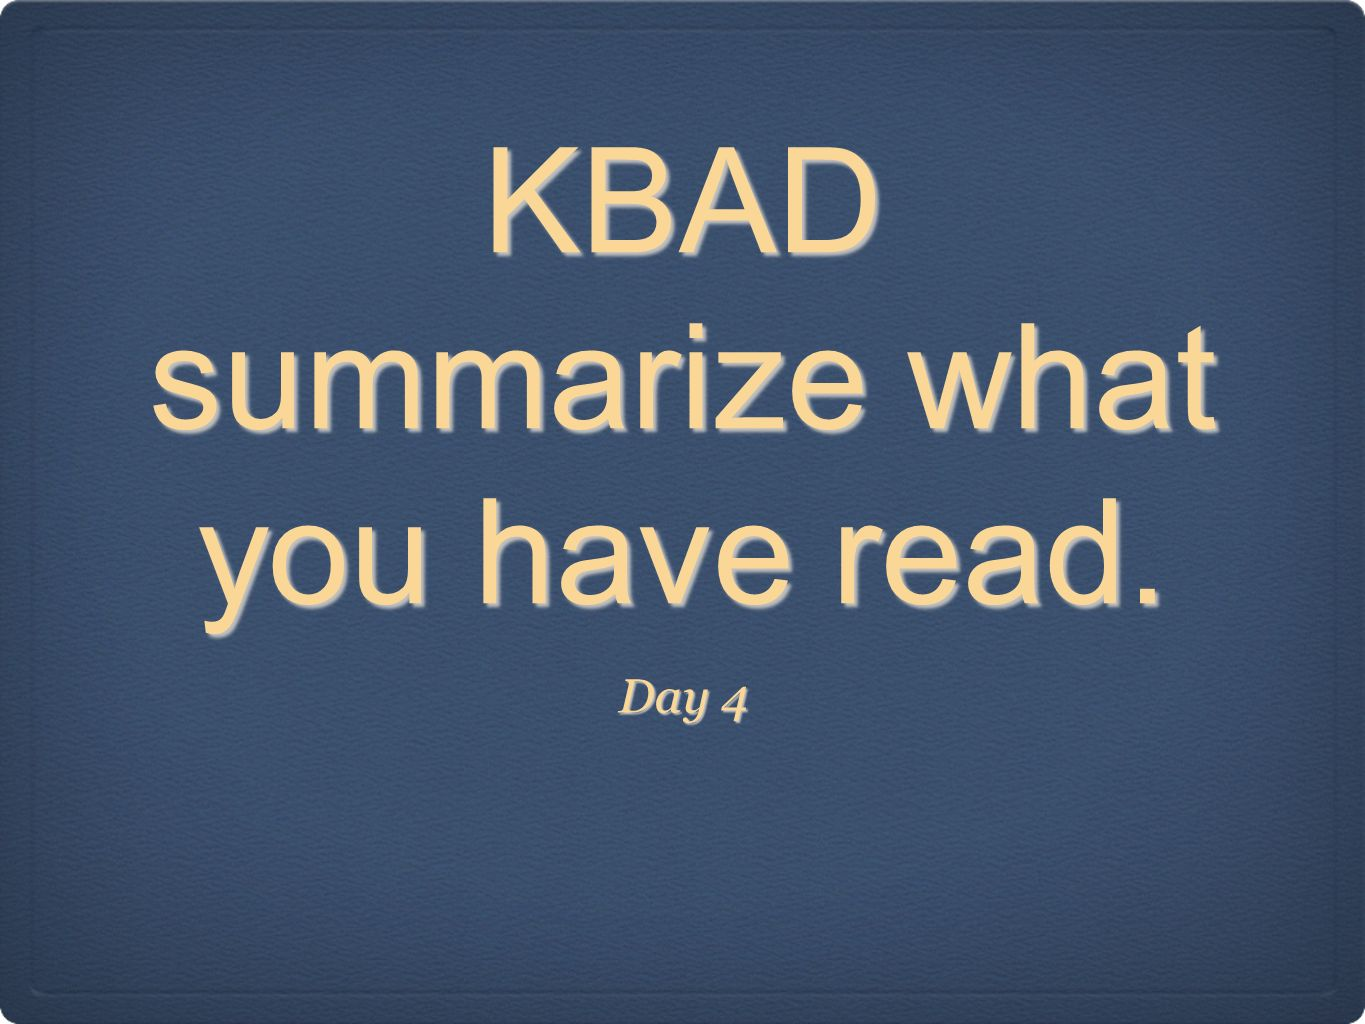 KBAD summarize what you have read.